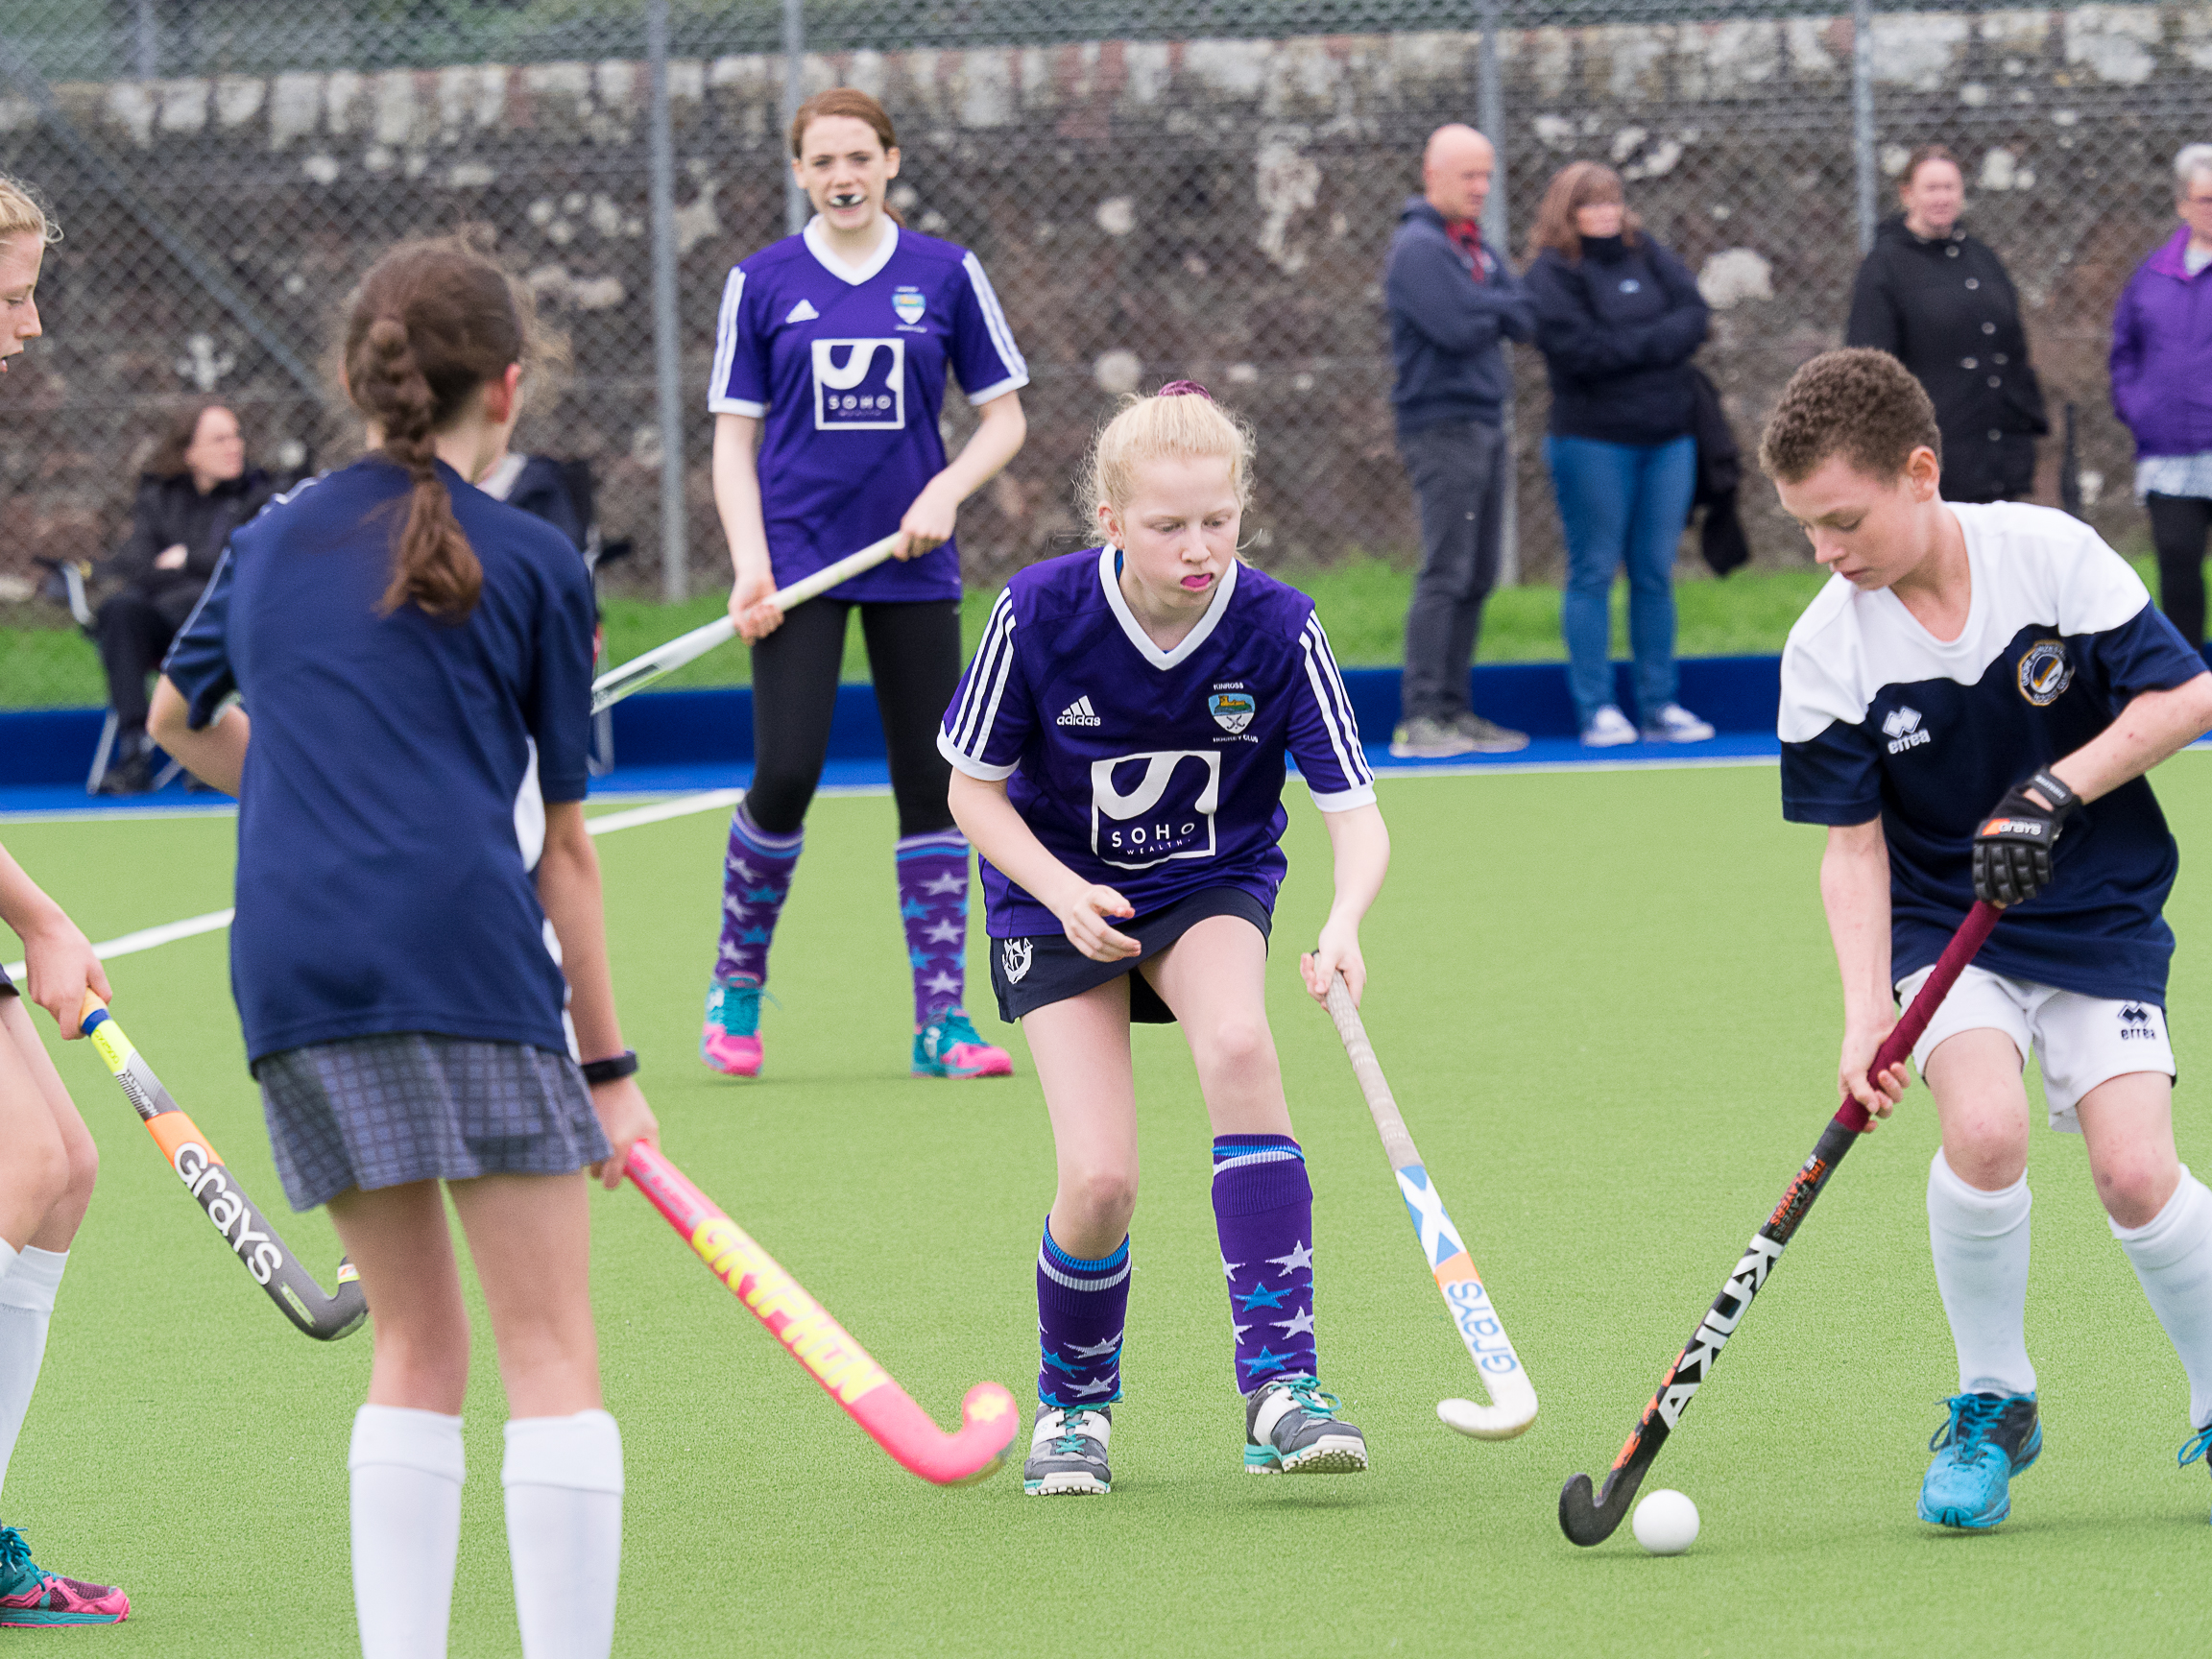 Hockey Kinross Sept 24th-60.jpg